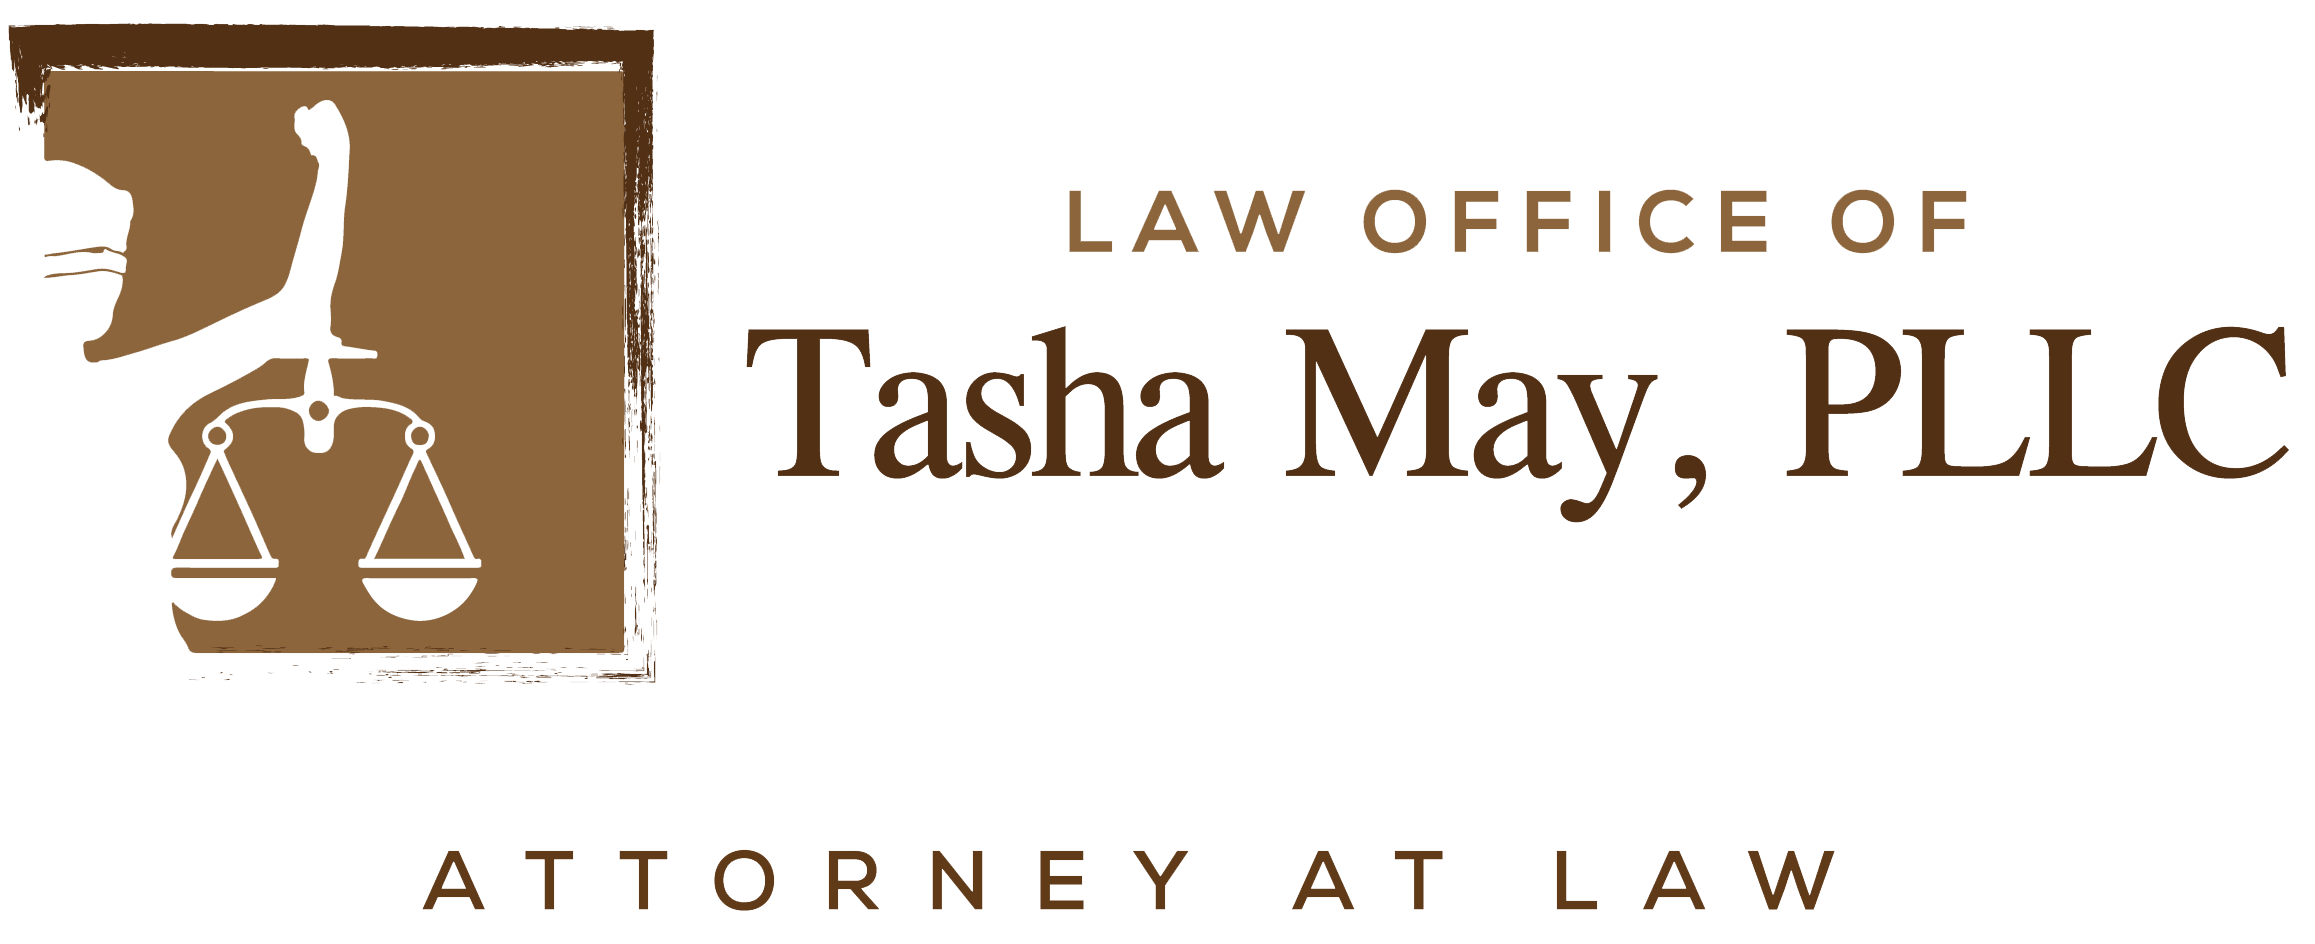 Law Office of Tasha May, PLLC